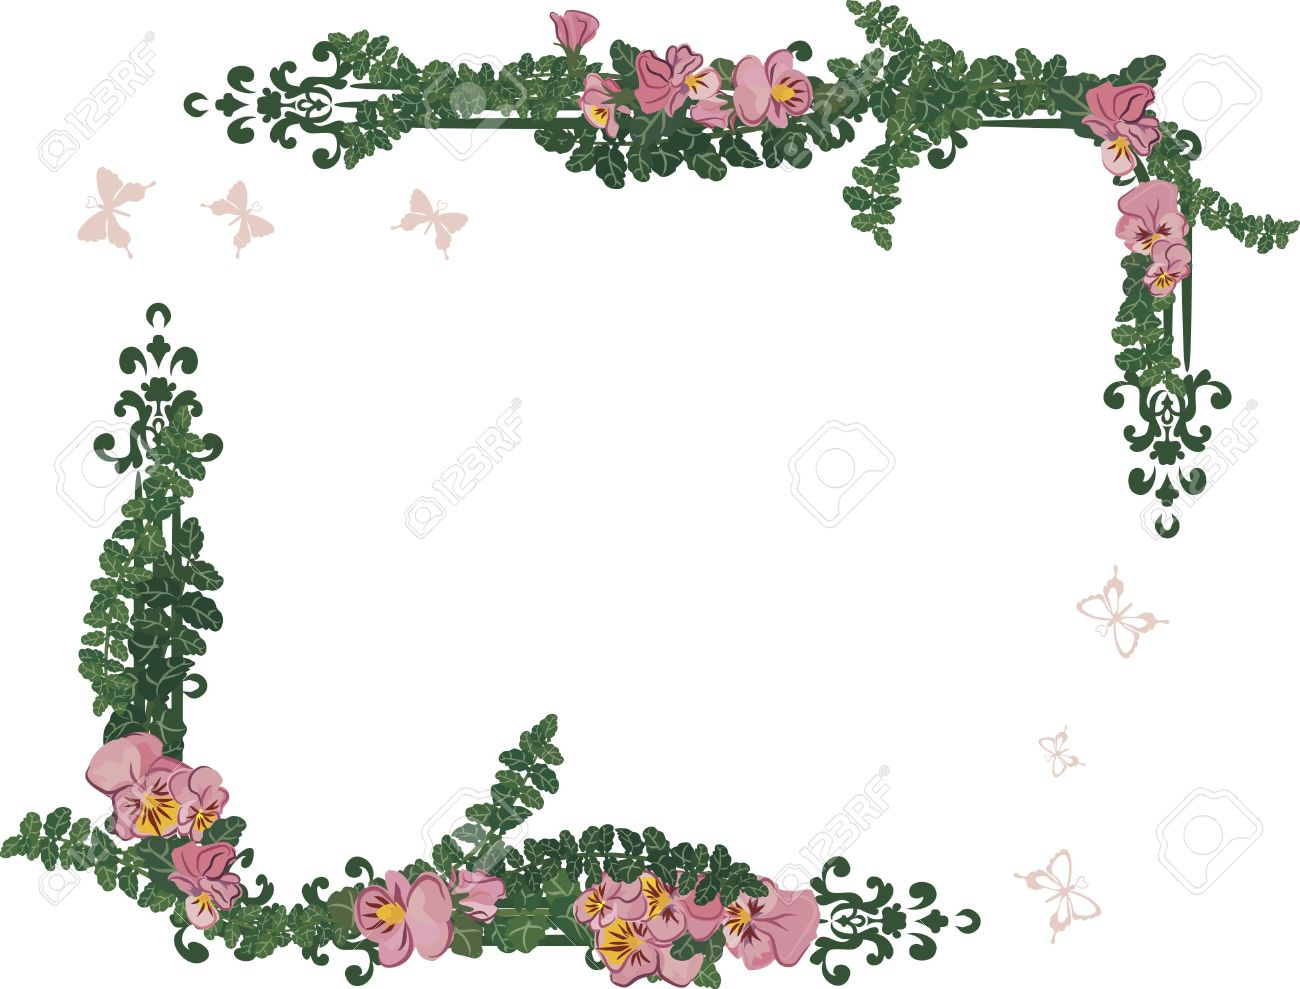 1300x989 Drawing Of Pansy Frame Elements With Butterflies. Stock Photo